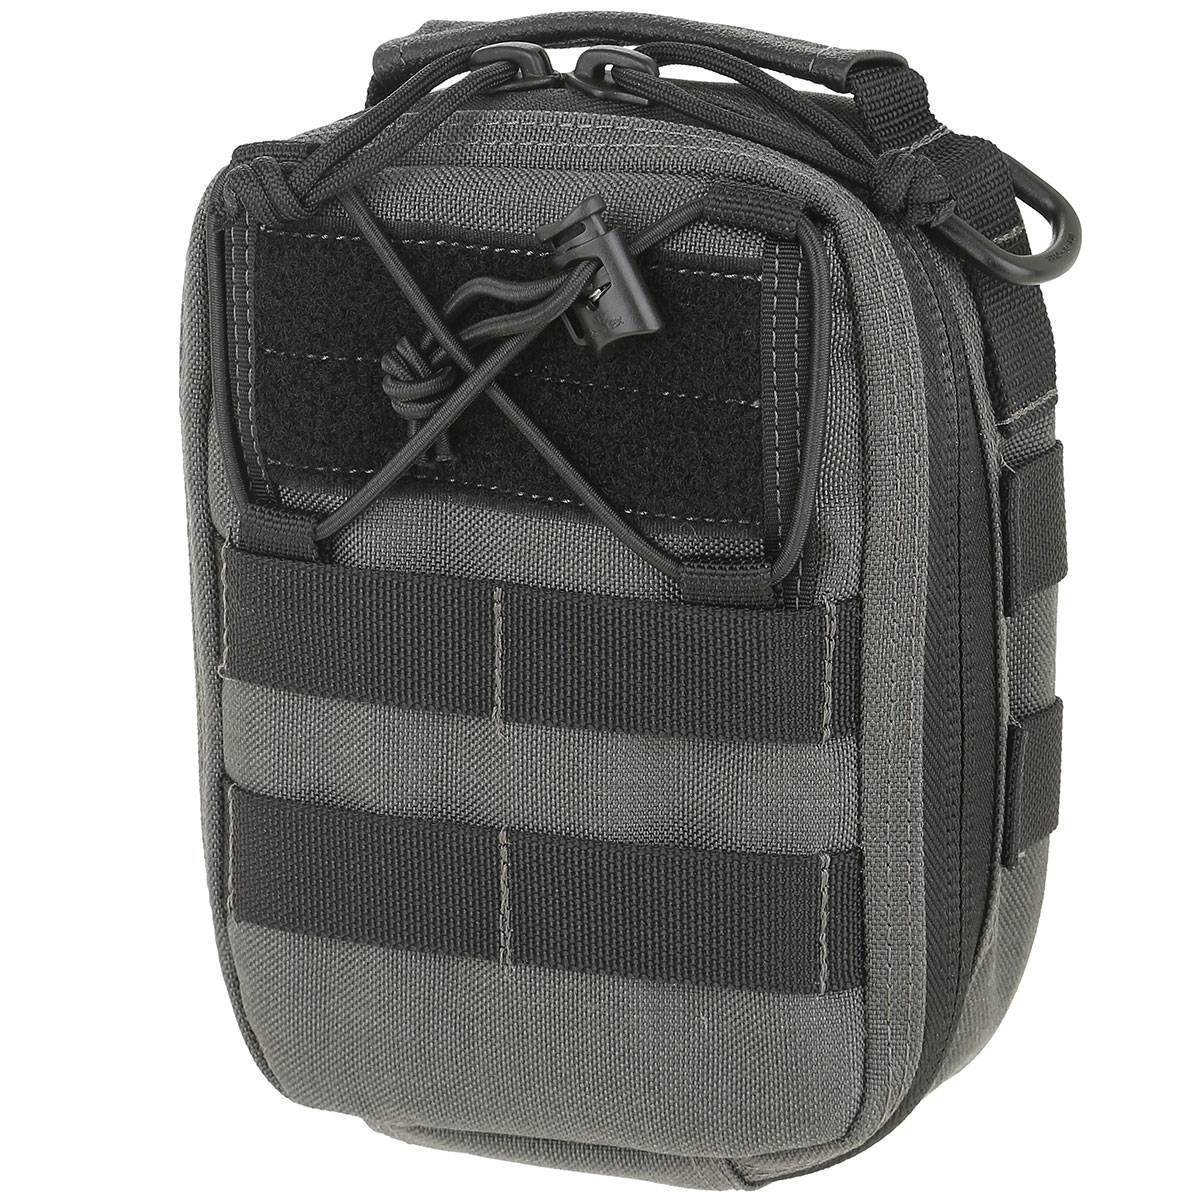 1b661804d2b6 Maxpedition FR-1 Combat Medical Pouch Wolf Gray 0226W купить по ...